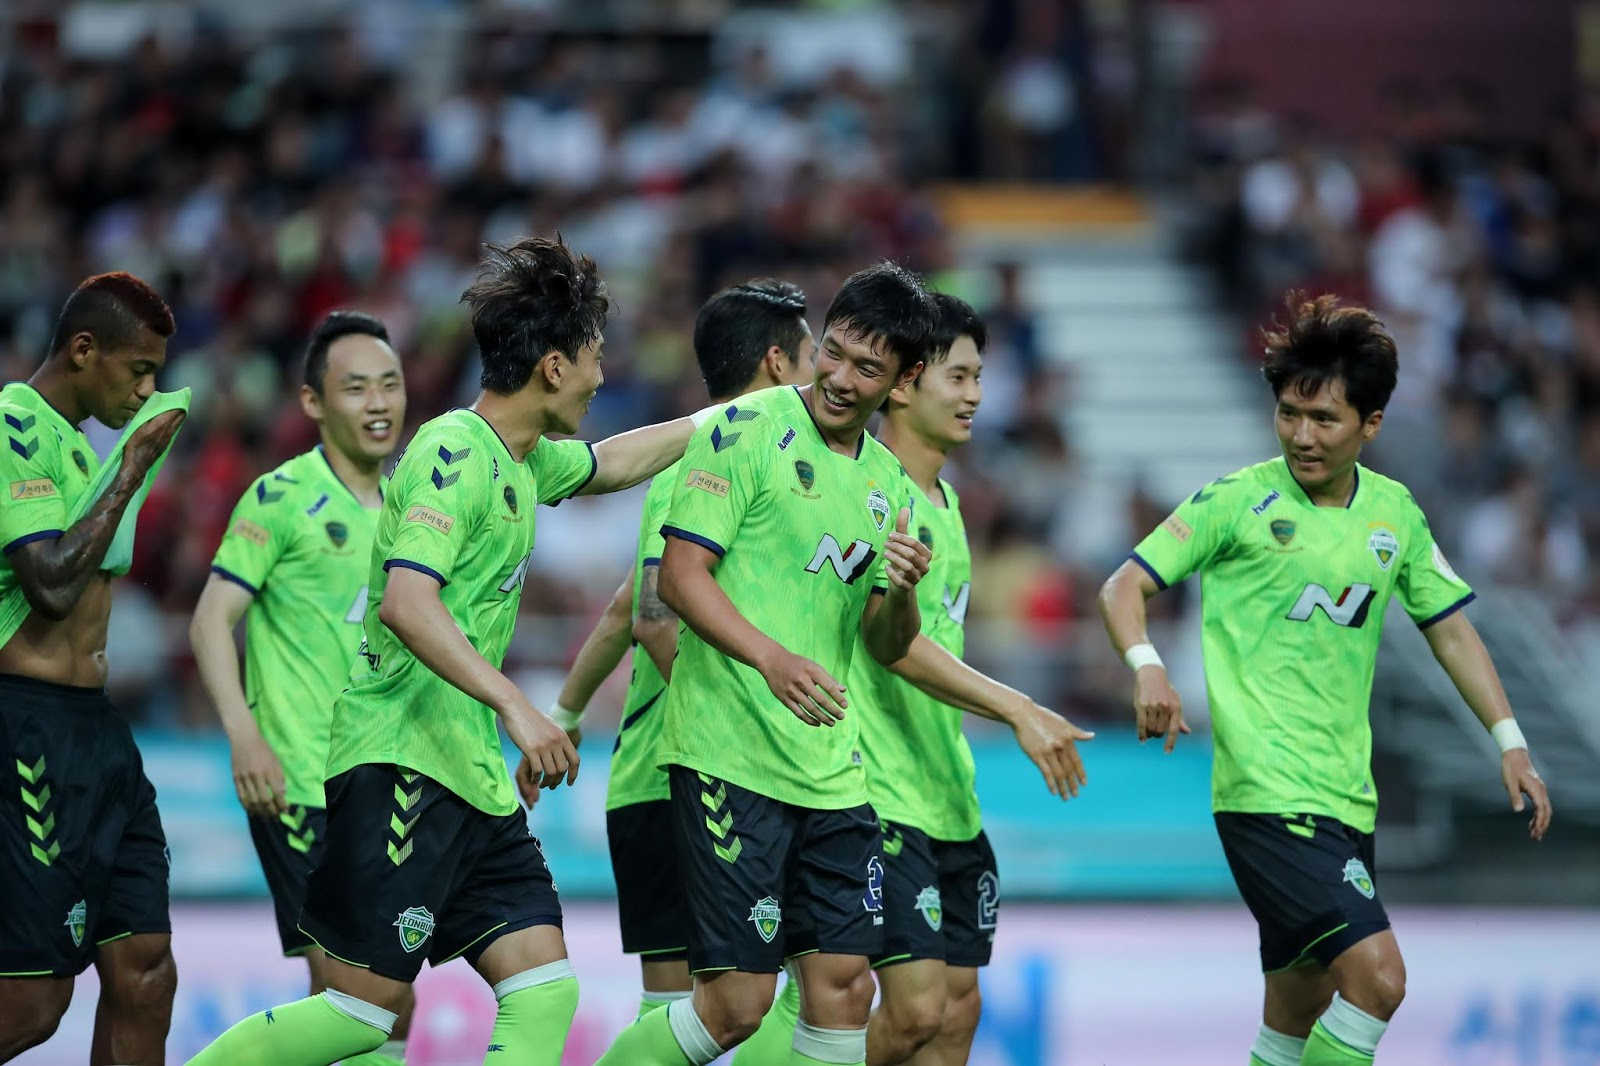 K League 1 Preview: Jeonbuk Hyundai Motors vs Jeju United